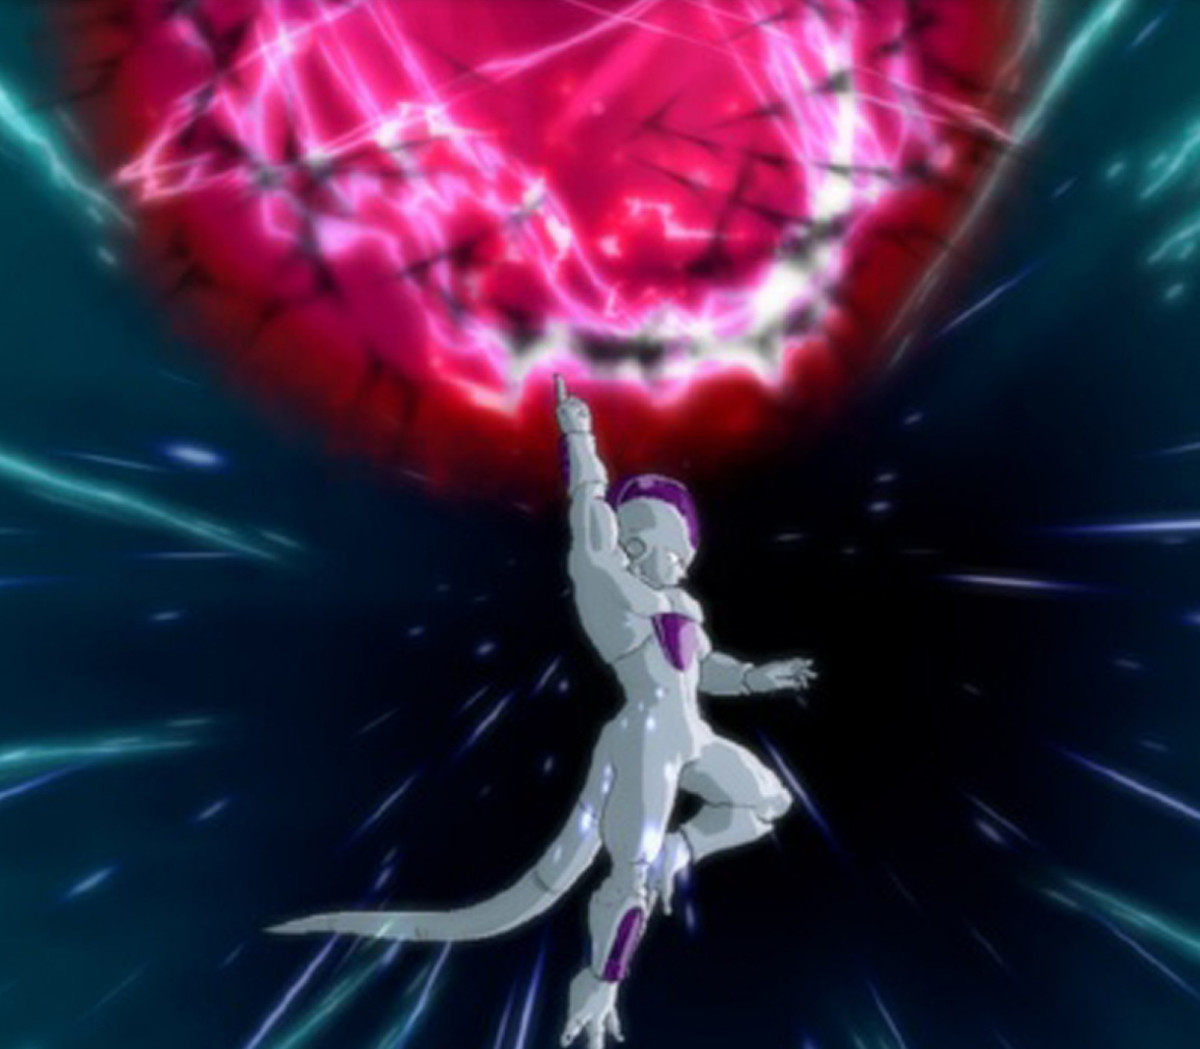 Frieza powers up a Death Ball